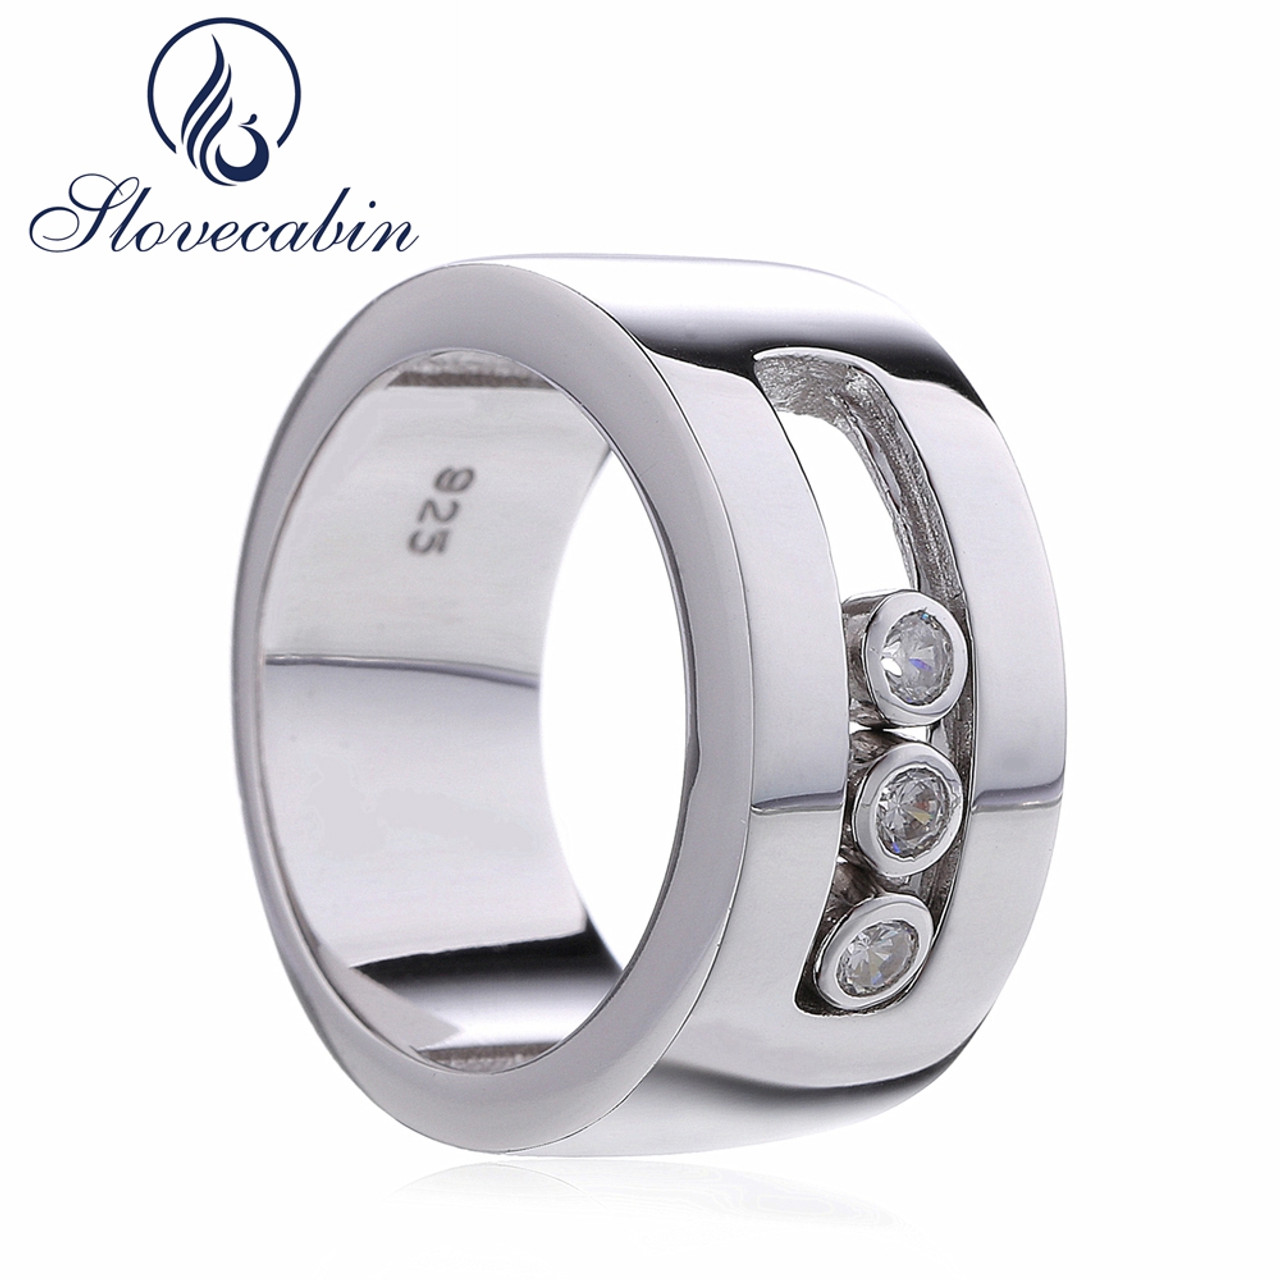 Slovecabin France Popular Jewelry 925 Sterling Silver Moved Wedding